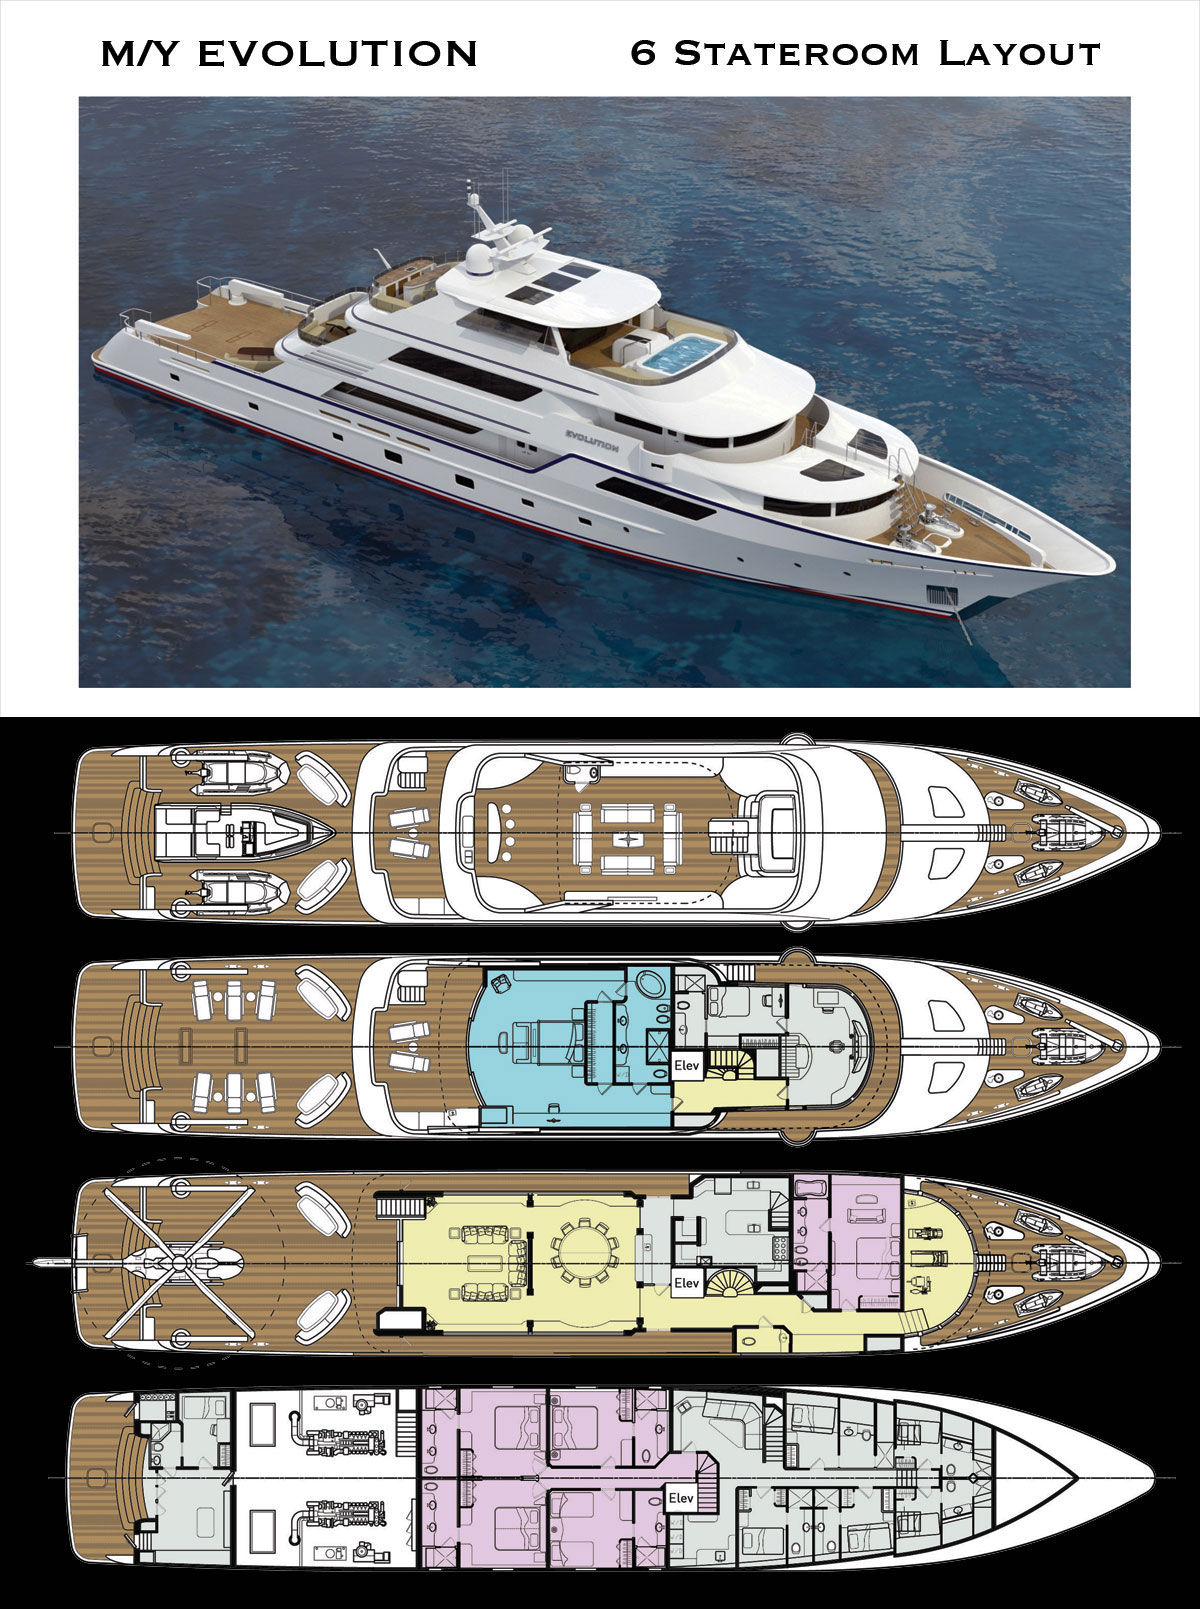 Luxury Explorer 50 Meter Yacht | 6 Stateroom Deck Layout